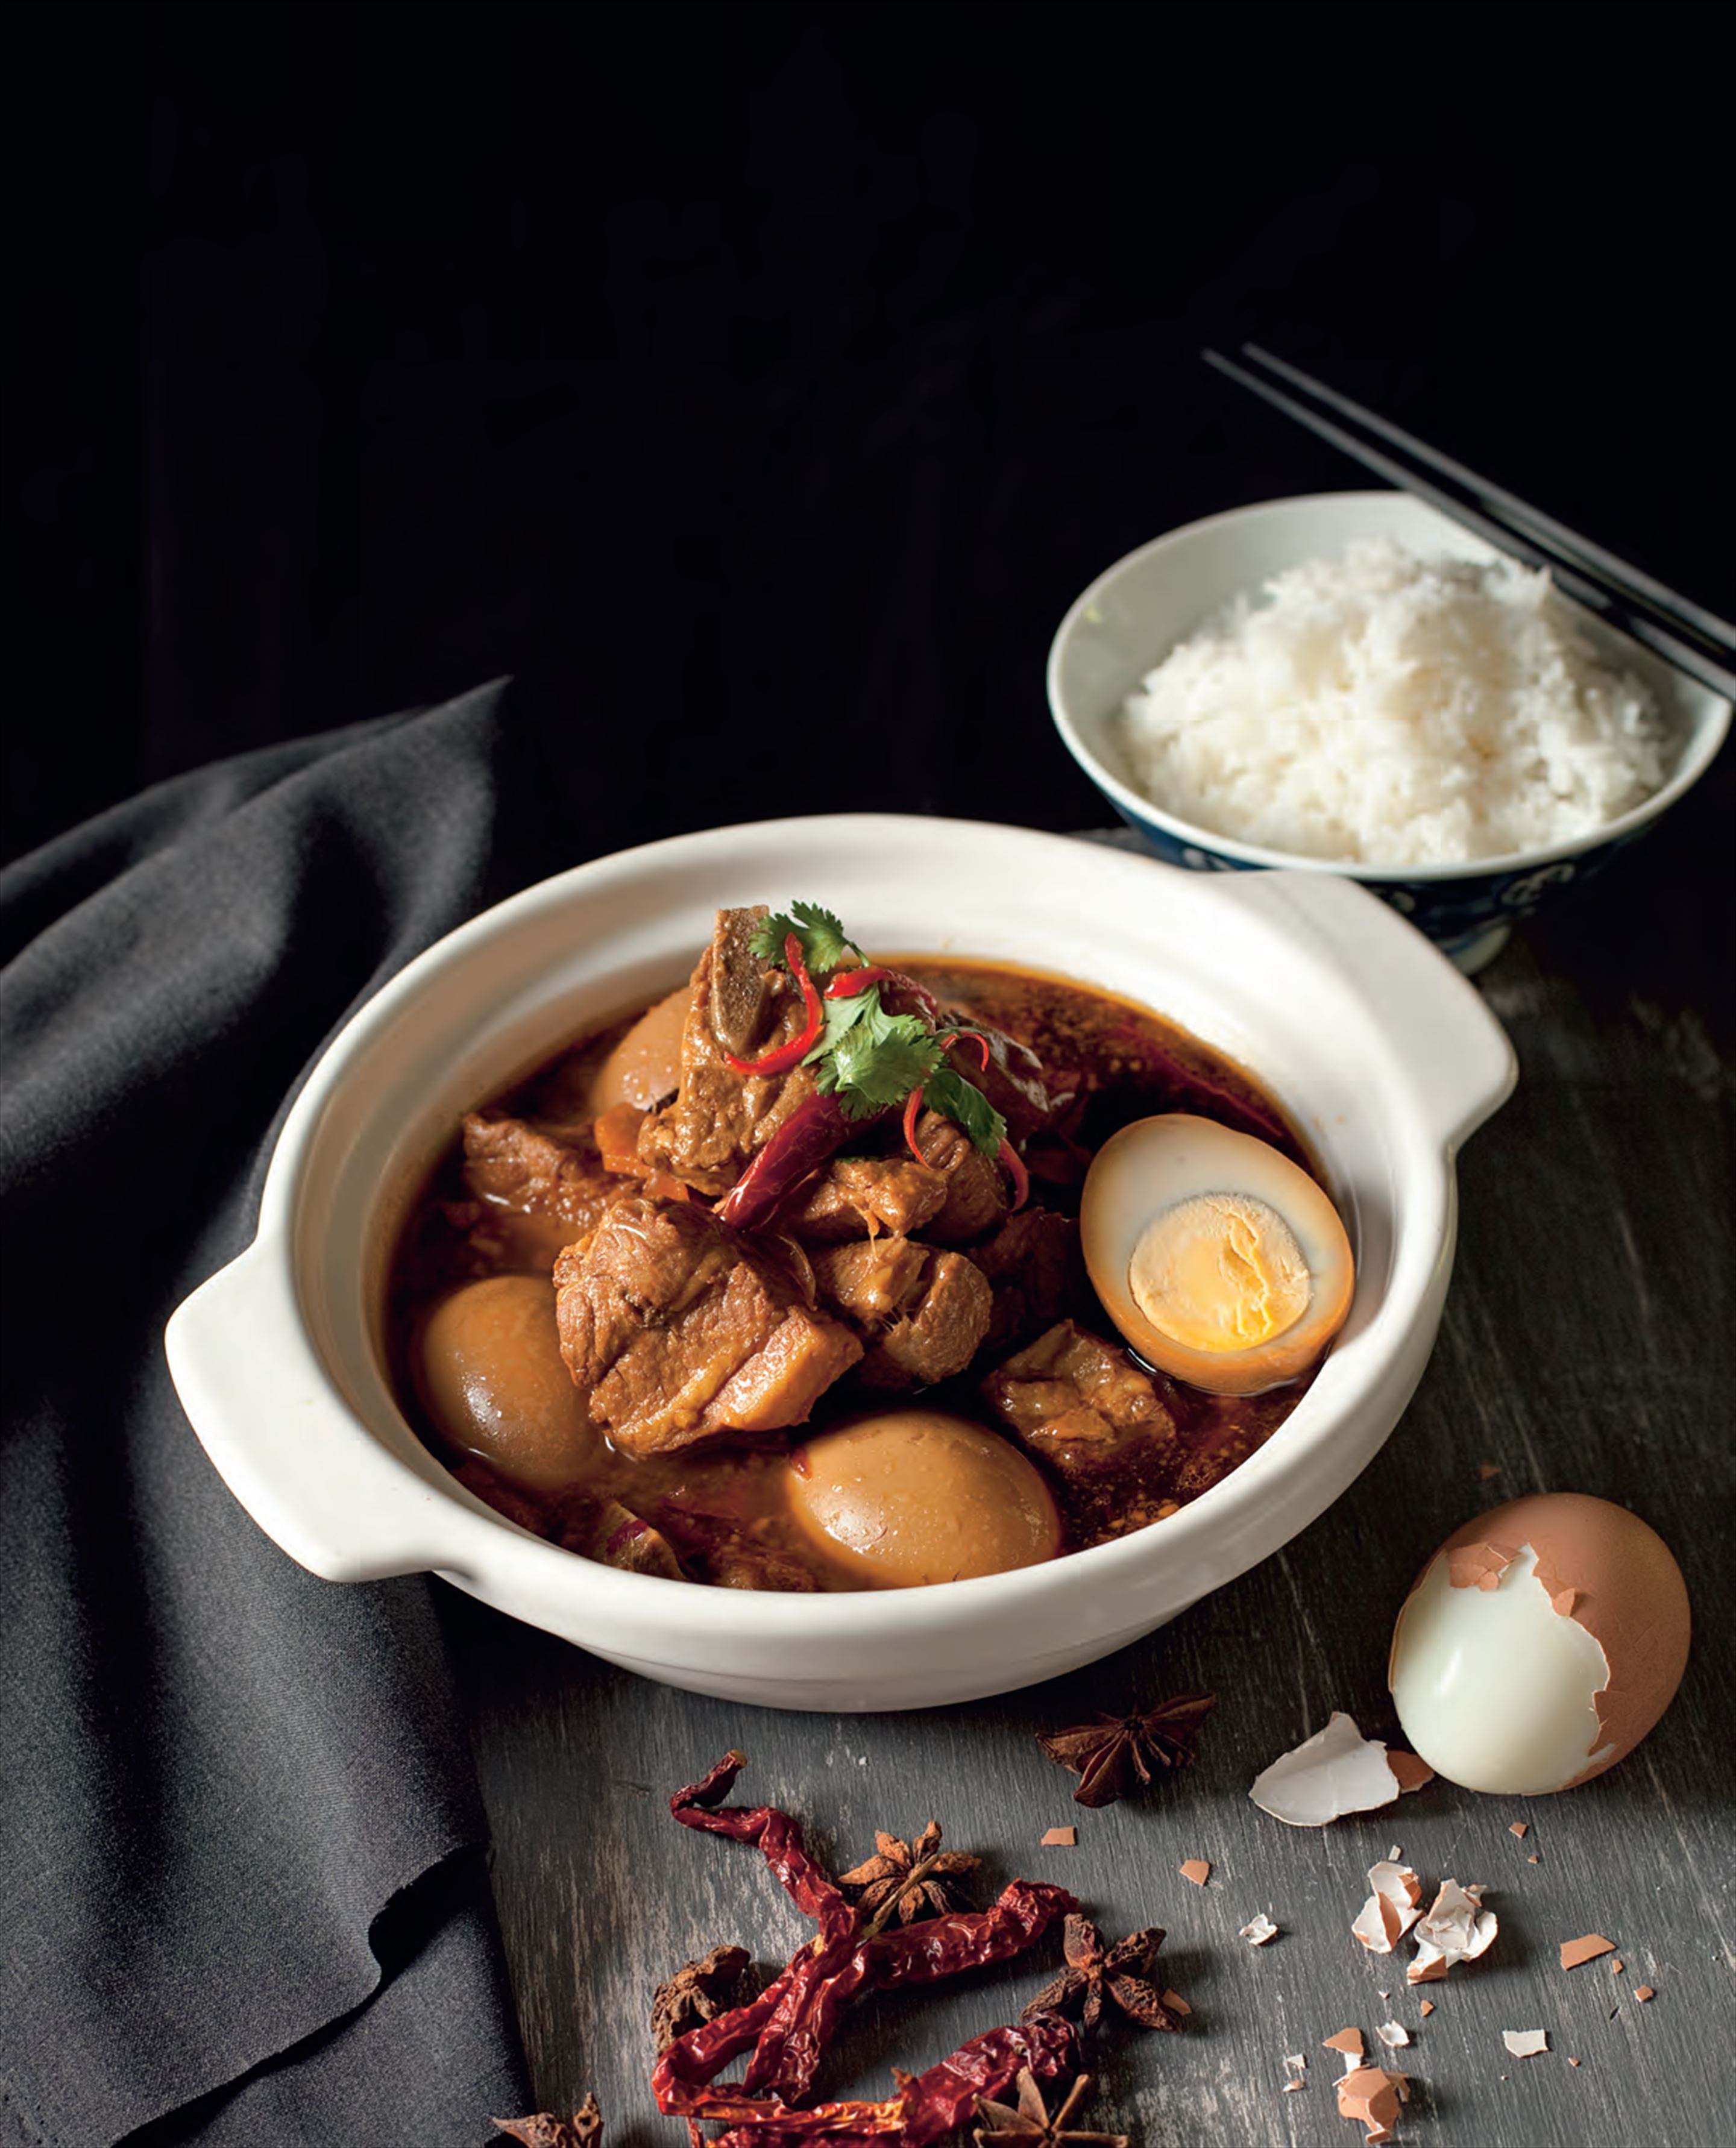 Mum's vinegar-braised pork belly and eggs